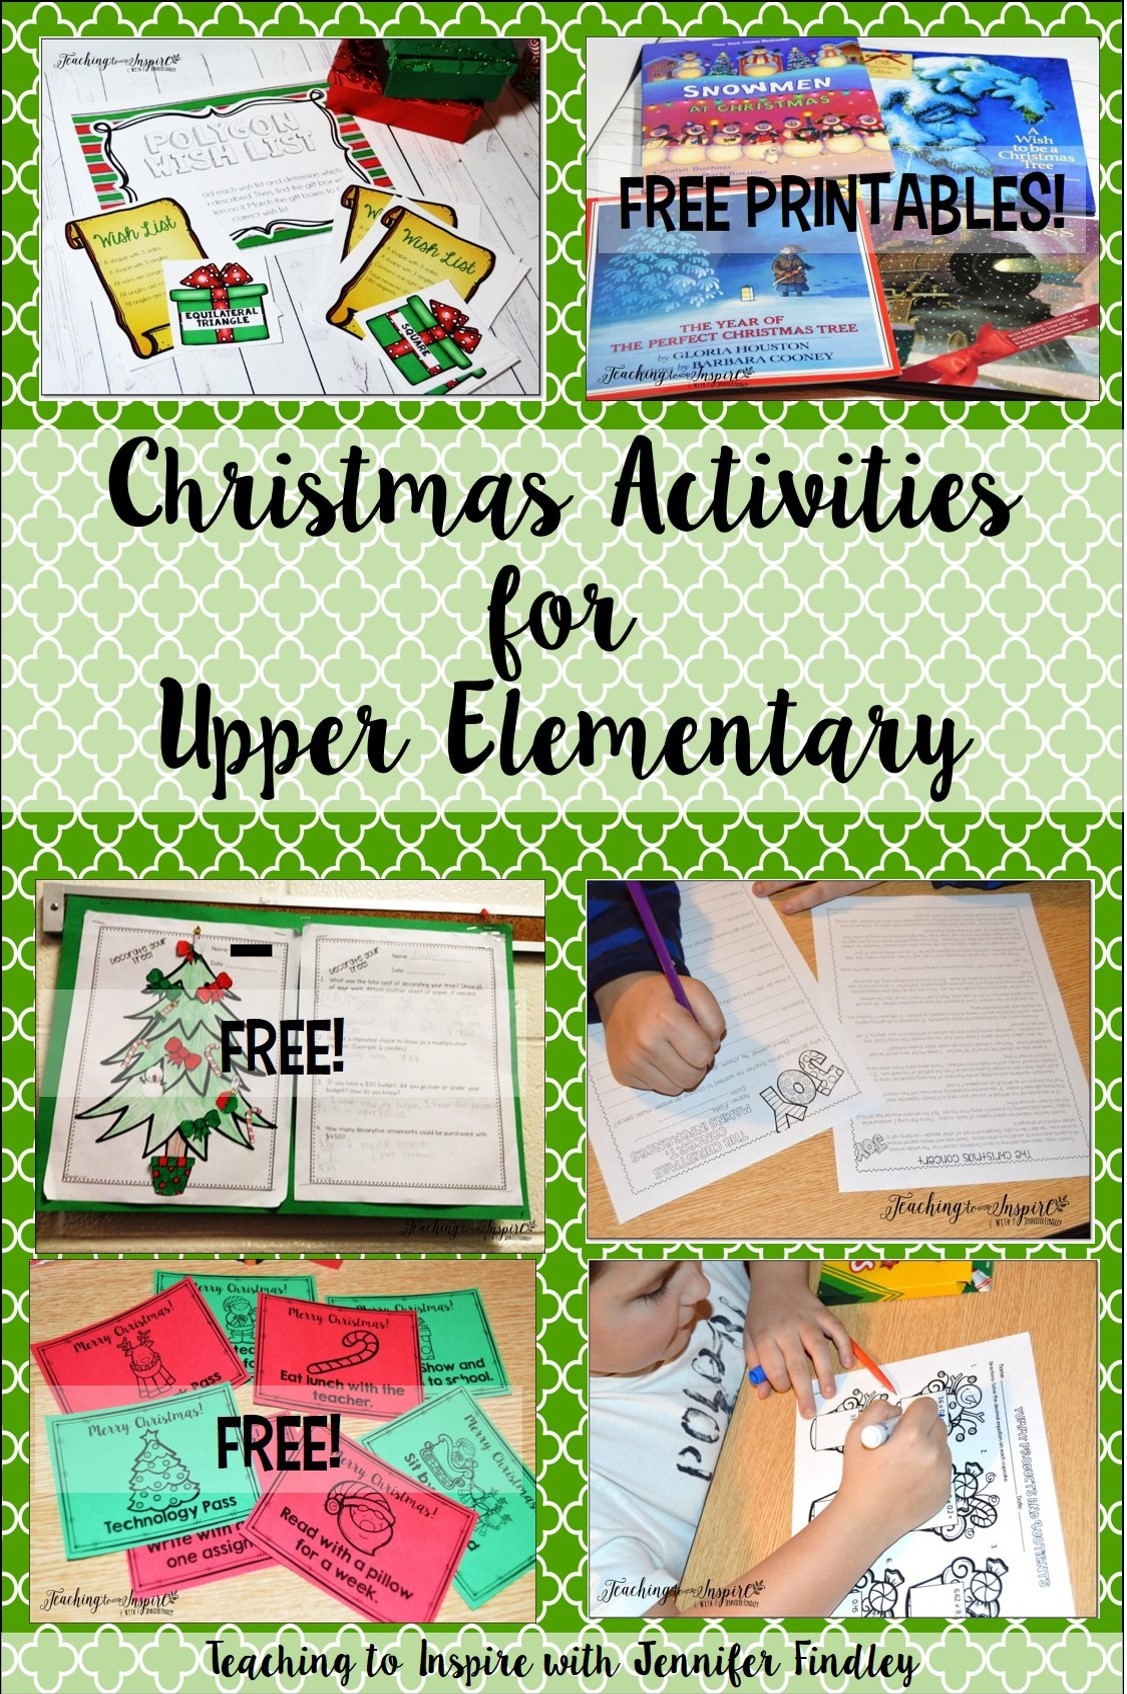 hight resolution of Christmas Activities for Upper Elementary - Teaching with Jennifer Findley